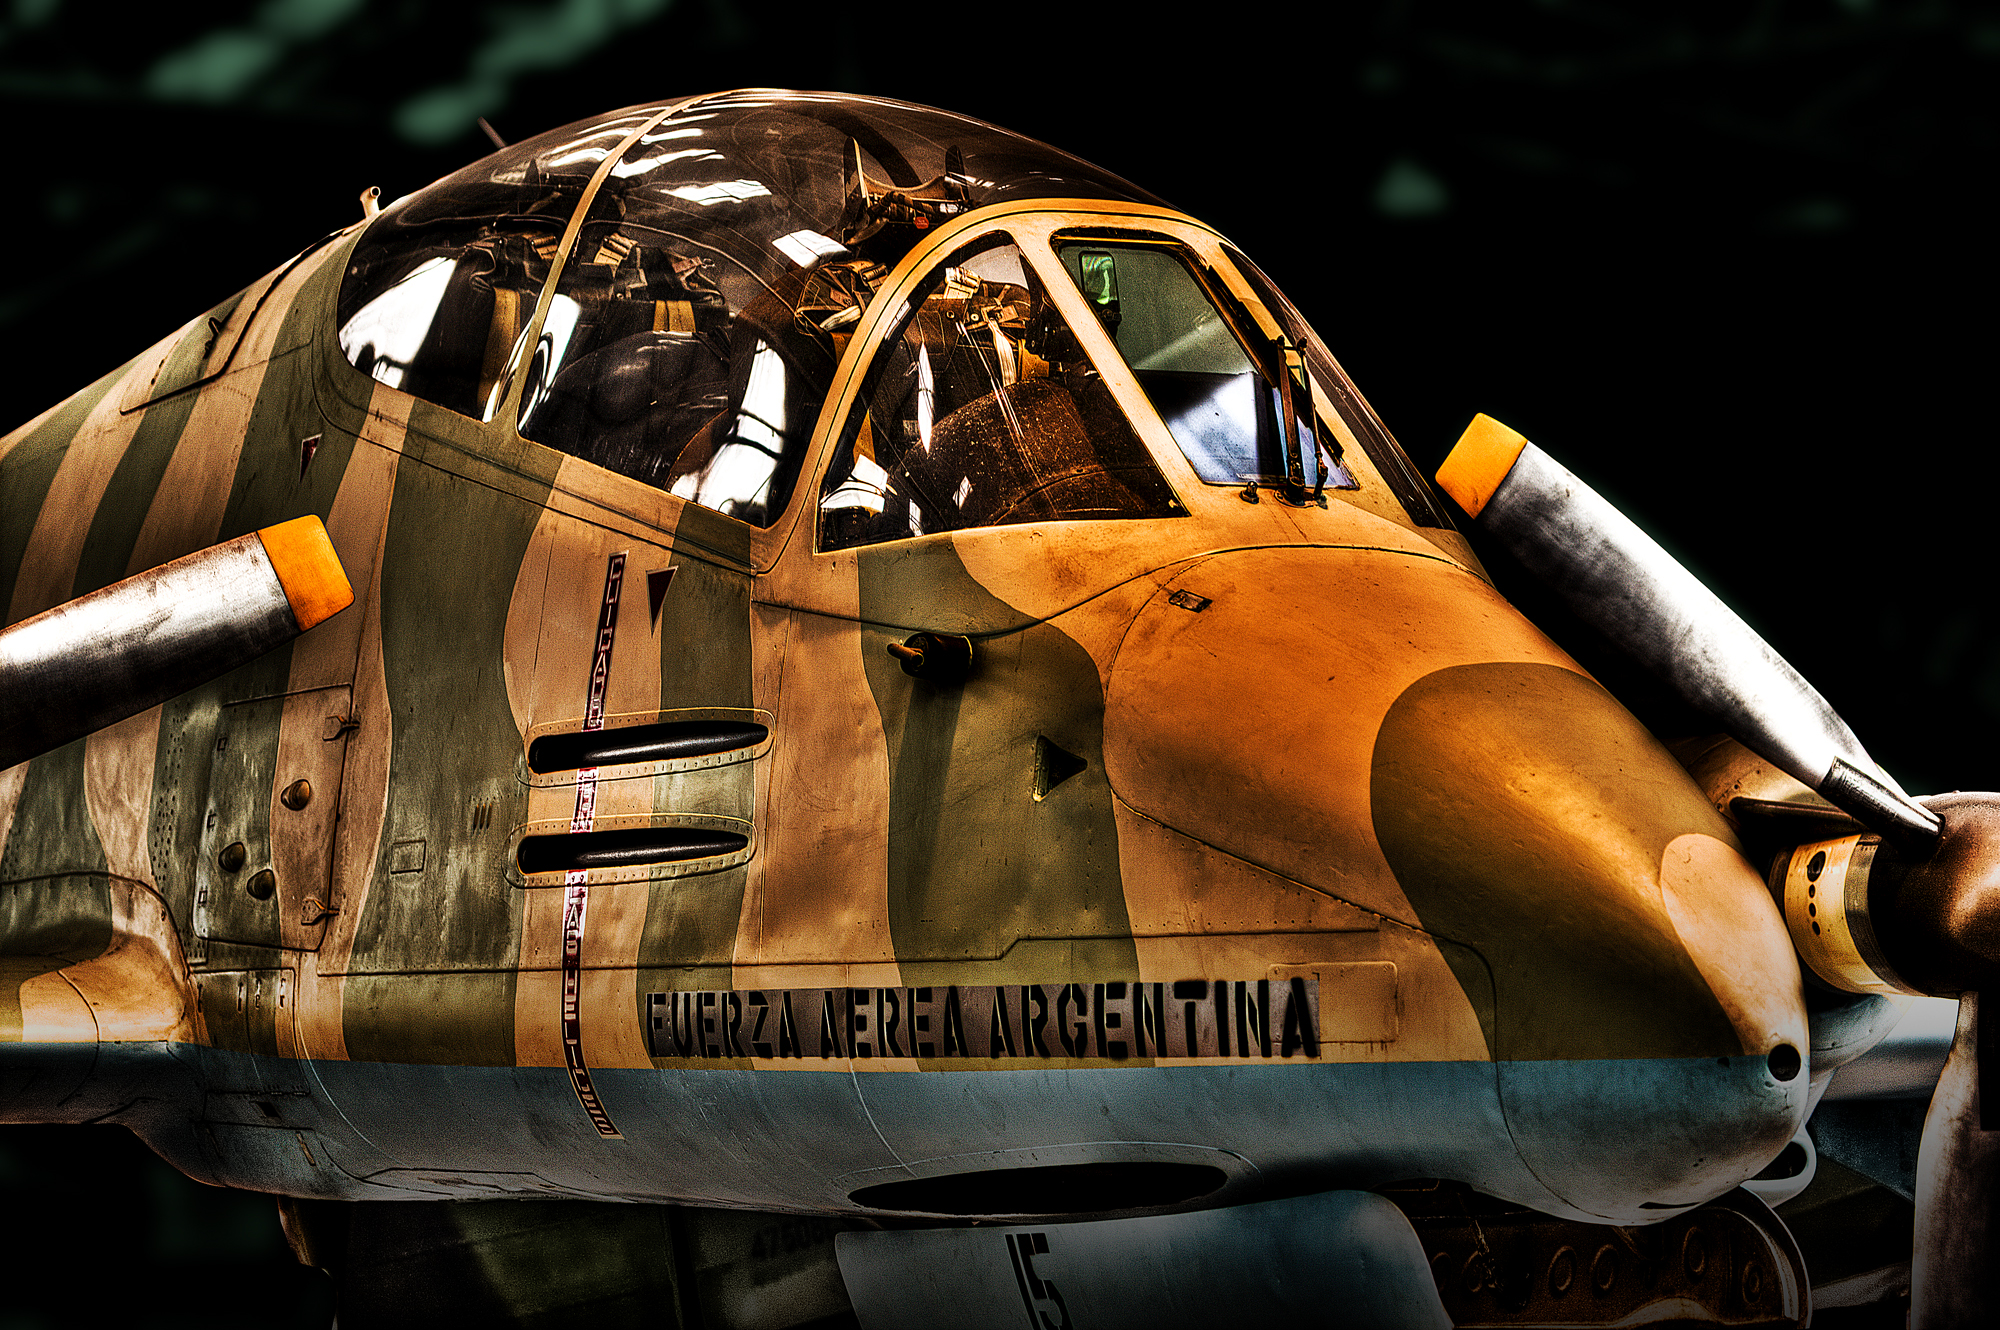 The Argentinian Aircraft